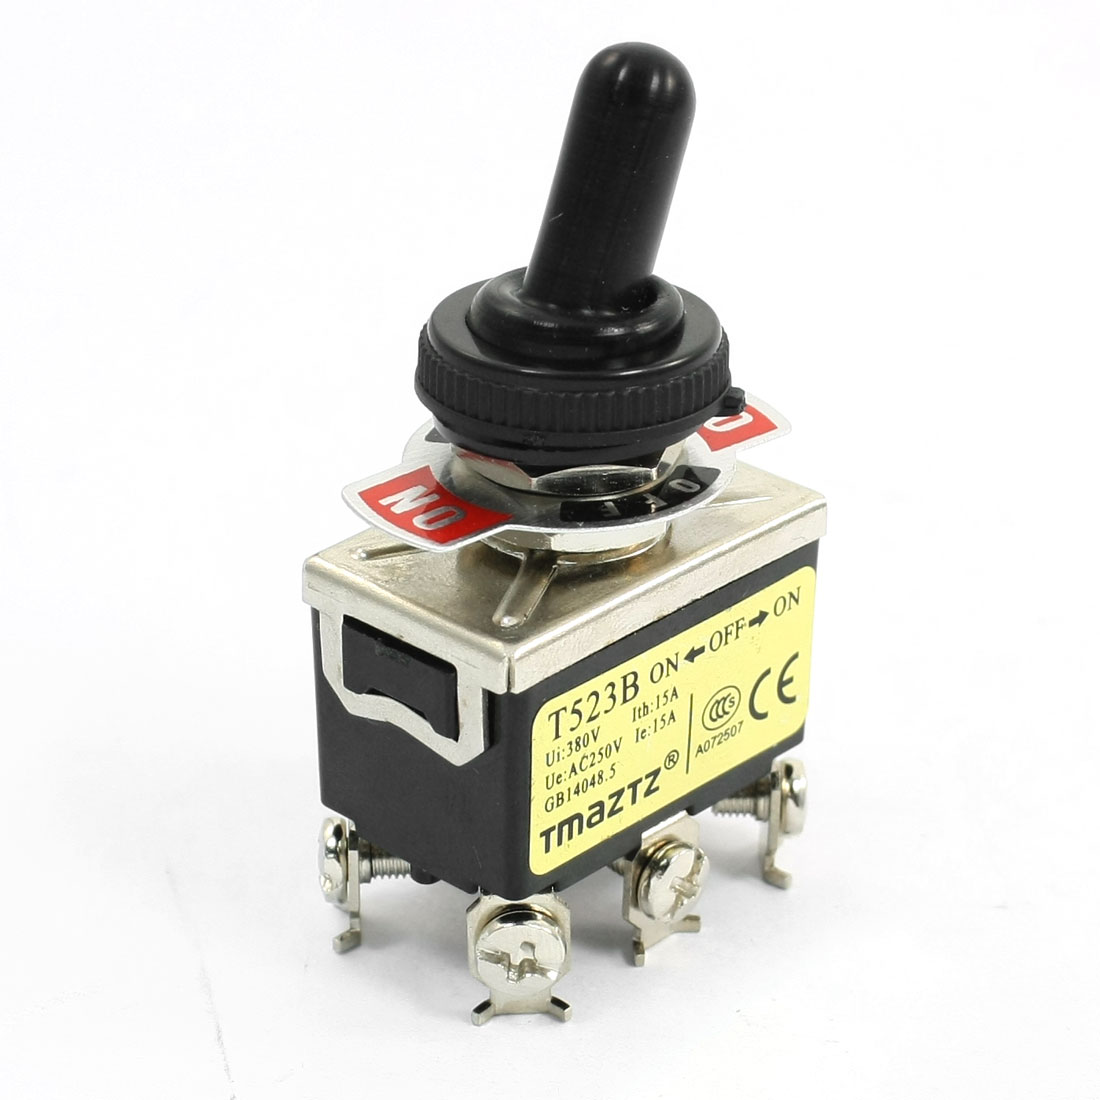 380V 15A Waterproof ON-OFF-ON 6 Terminals DPDT Locking Toggle Switch